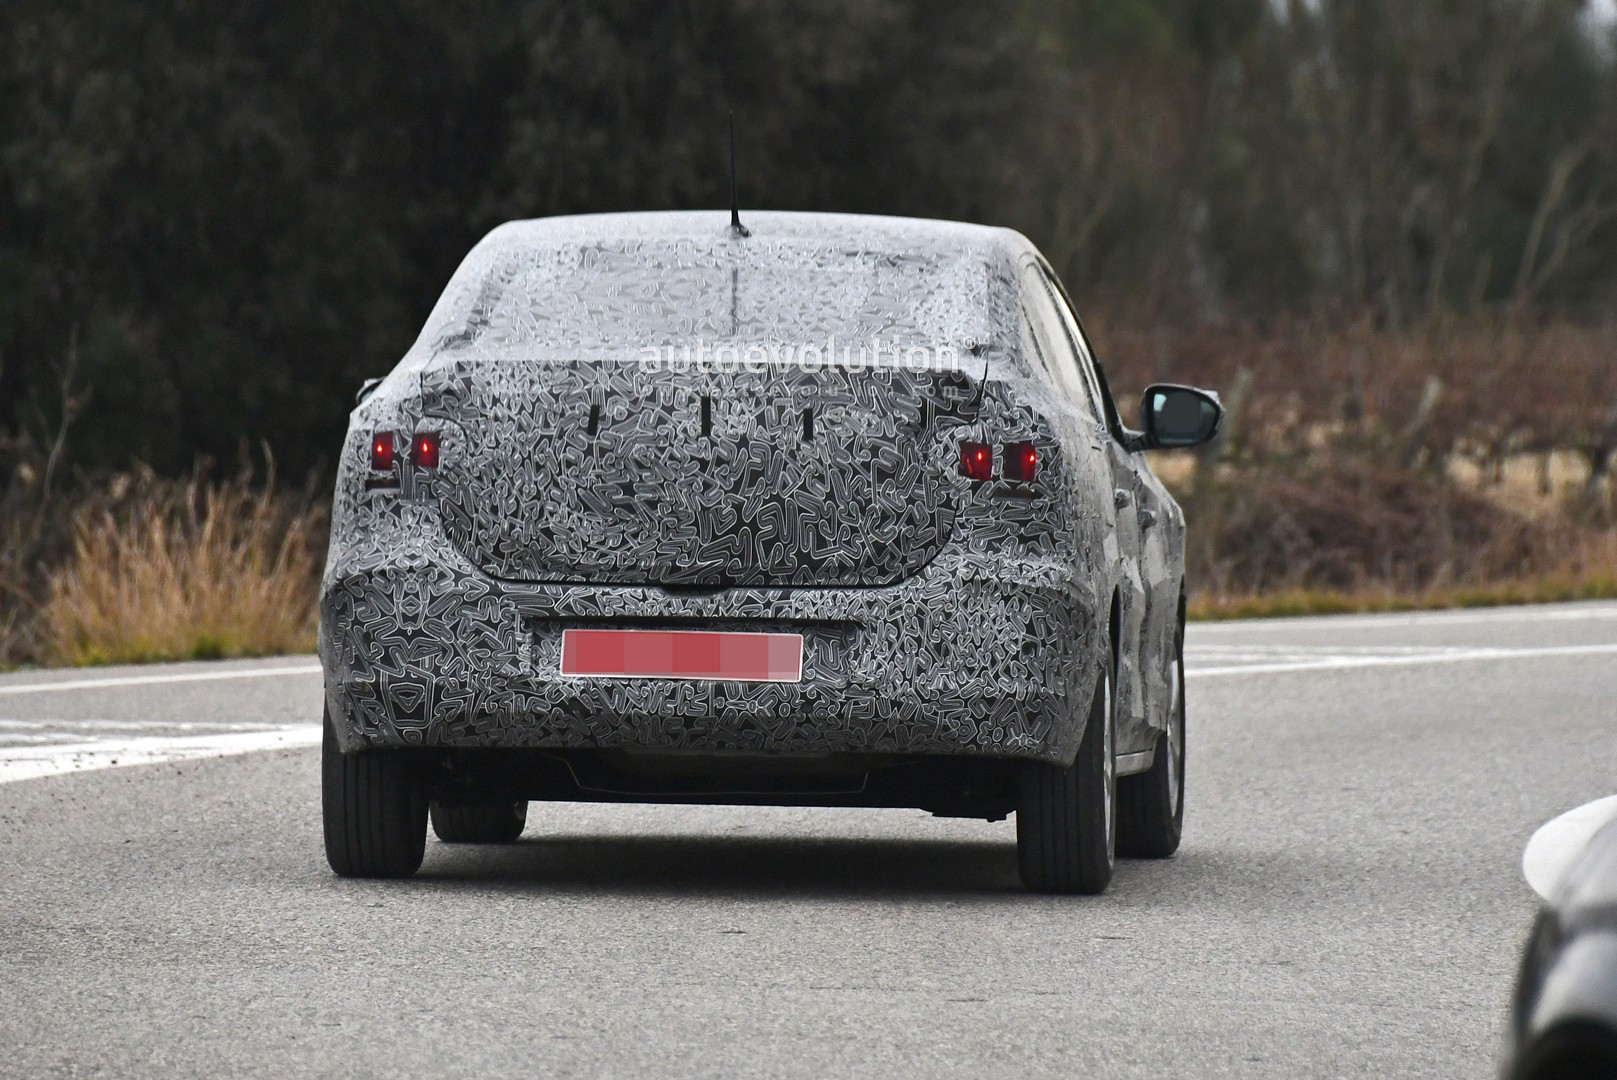 all-new-2021-dacia-logan-spied-with-led-lights-coupe-roof_11